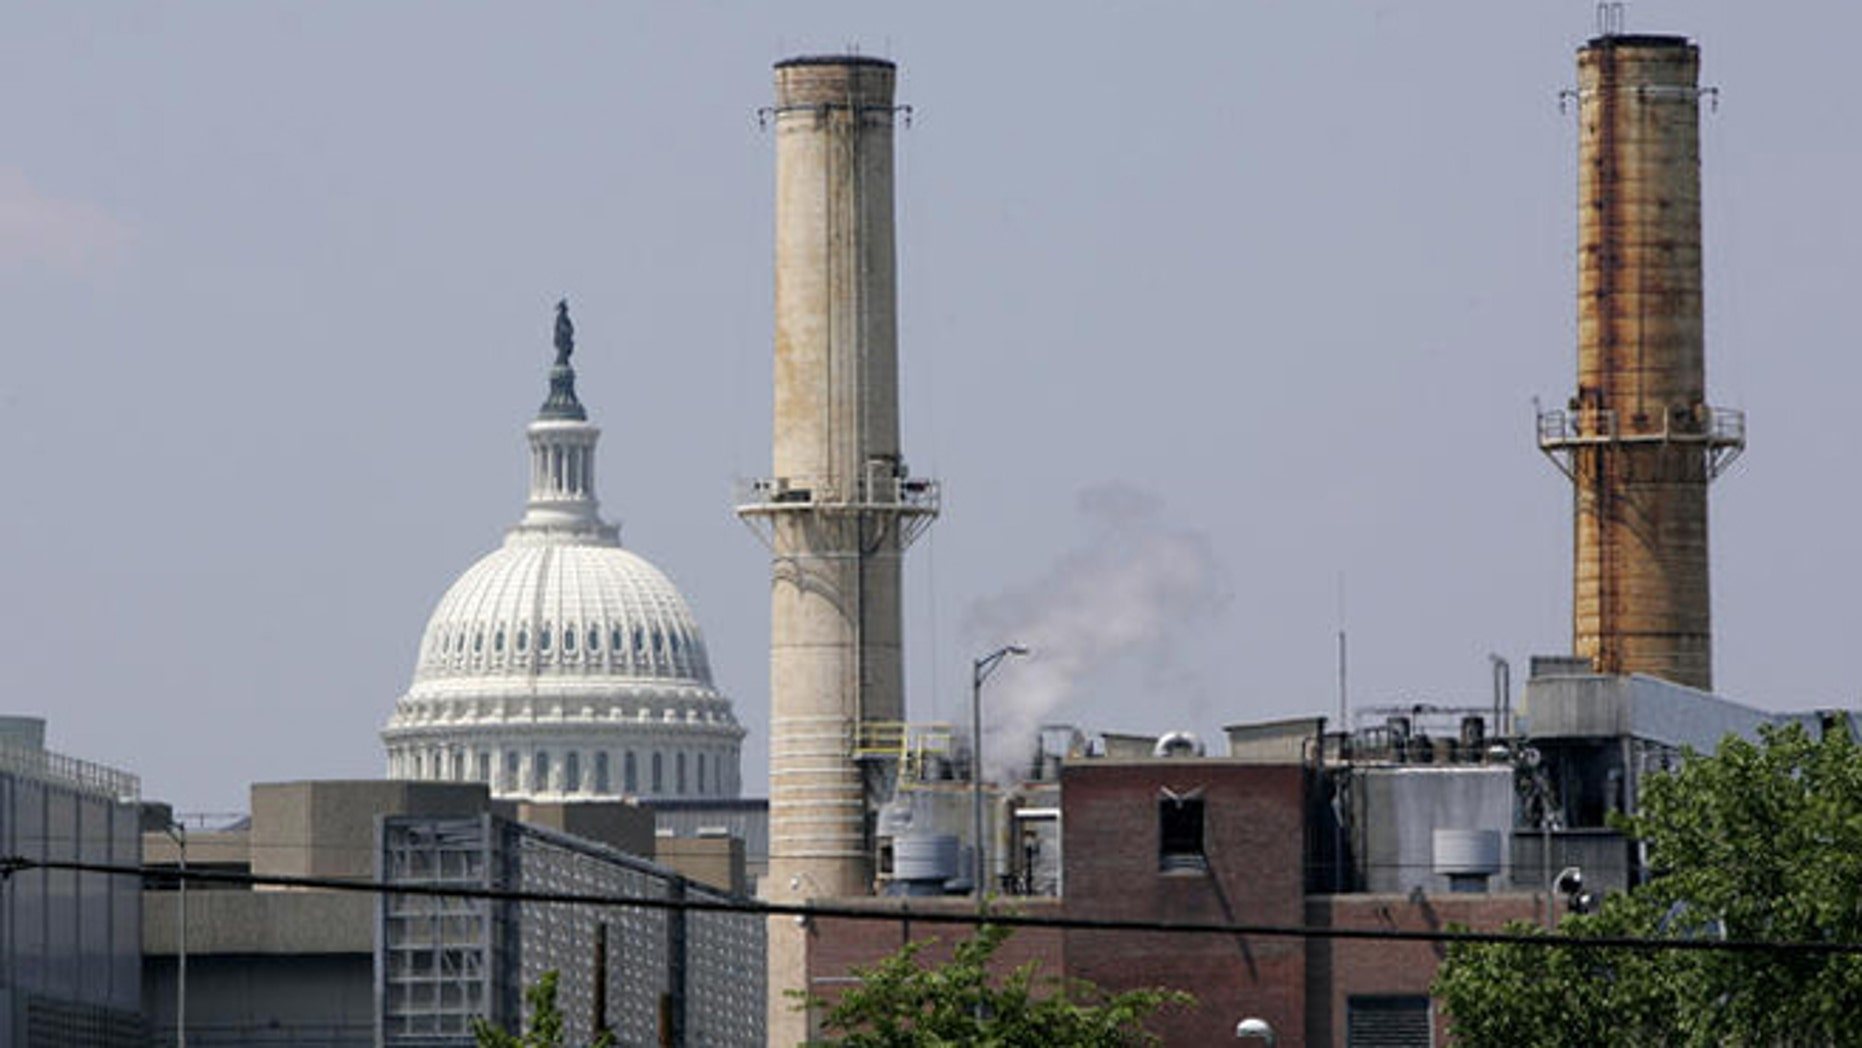 Coal-fired power plants are seen with the U.S. Capitol looming in the background.